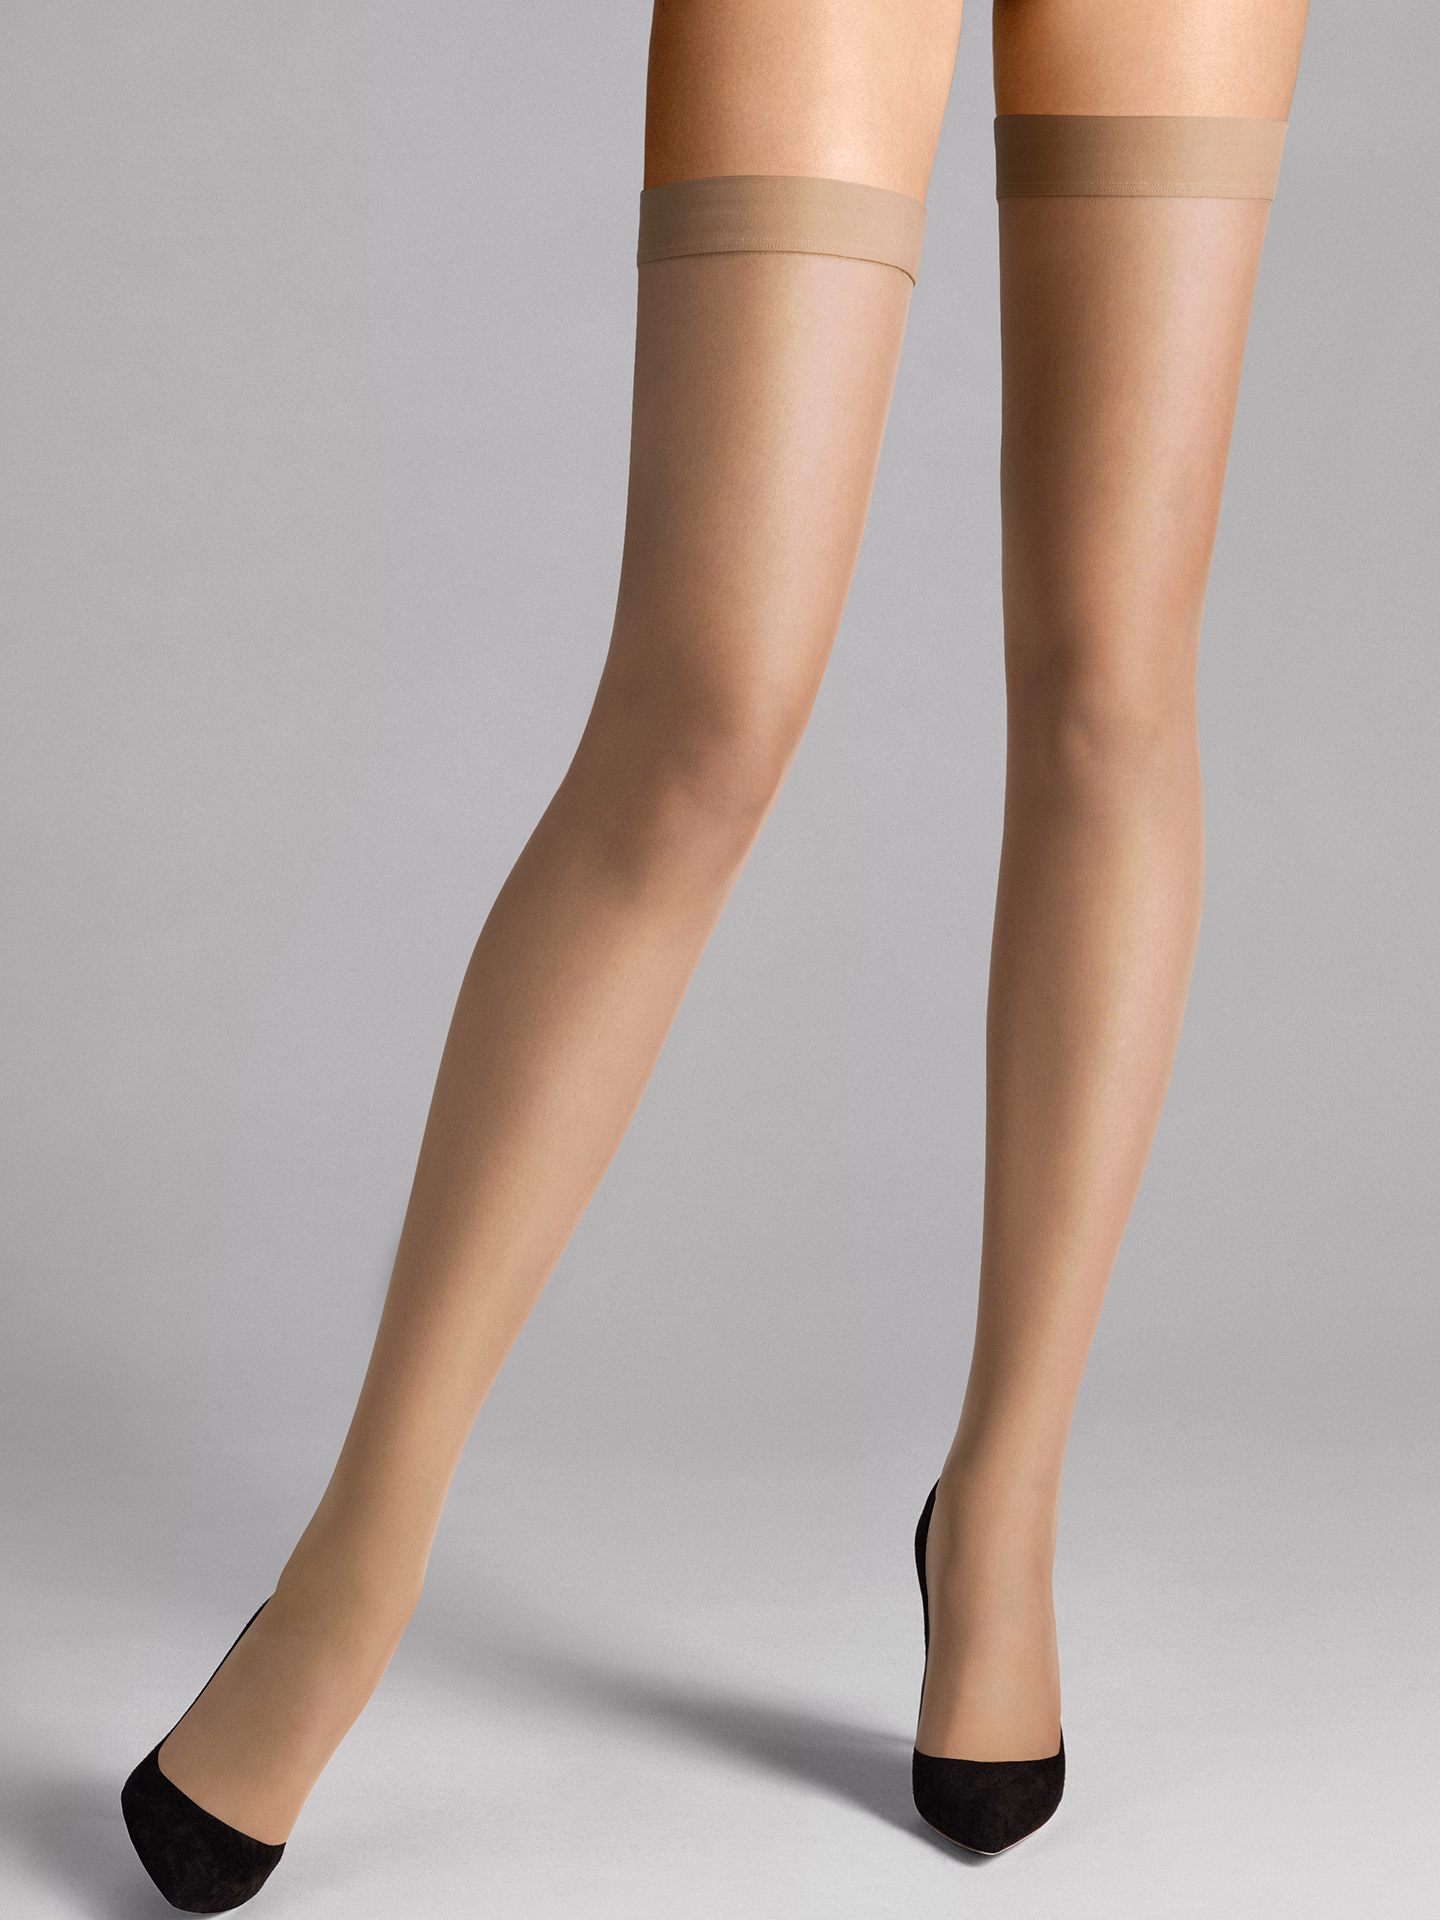 Wolford Apparel & Accessories > Clothing > Autoreggenti & Calze Individual 10 Stay-Up